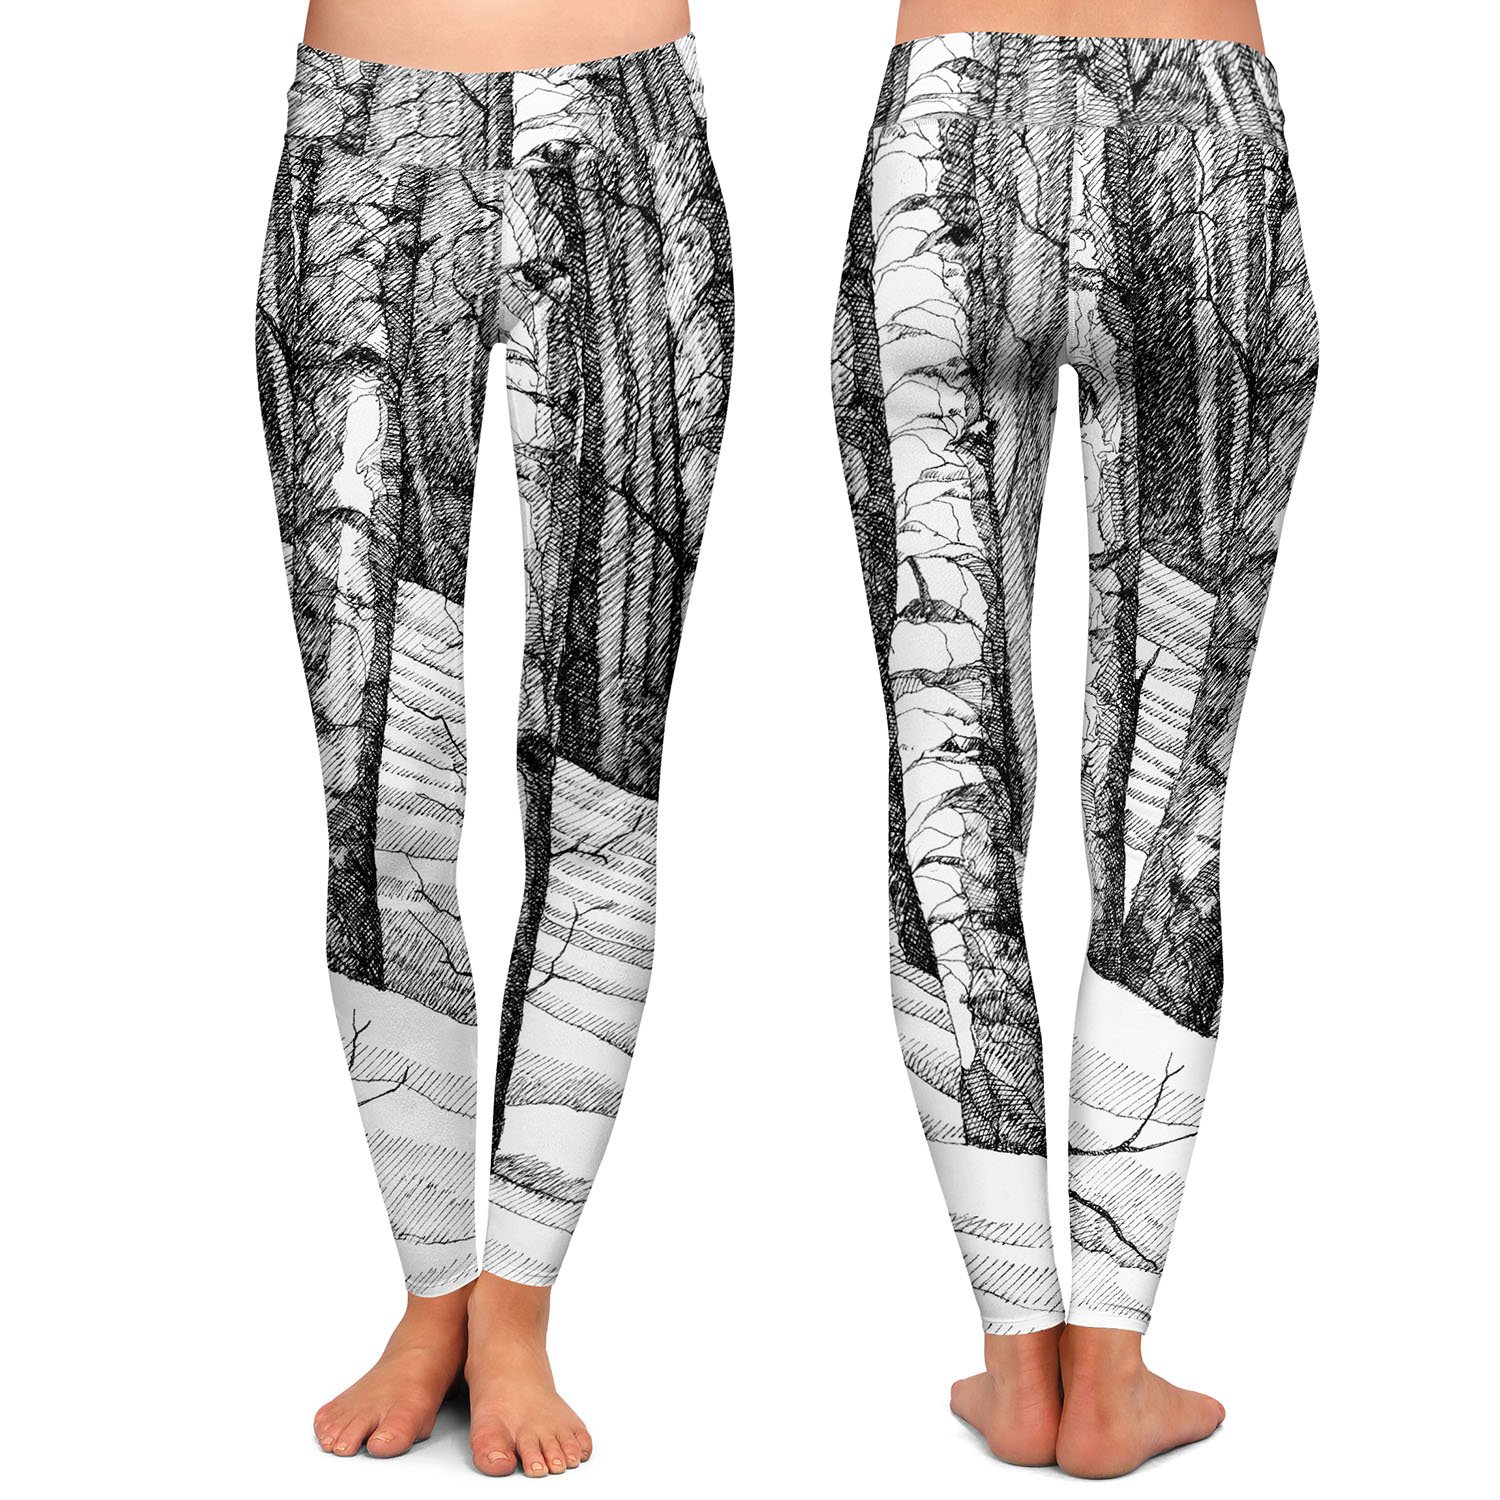 Dont Snowboard Here Athletic Yoga Leggings from DiaNoche Designs by Gerry Segismundo